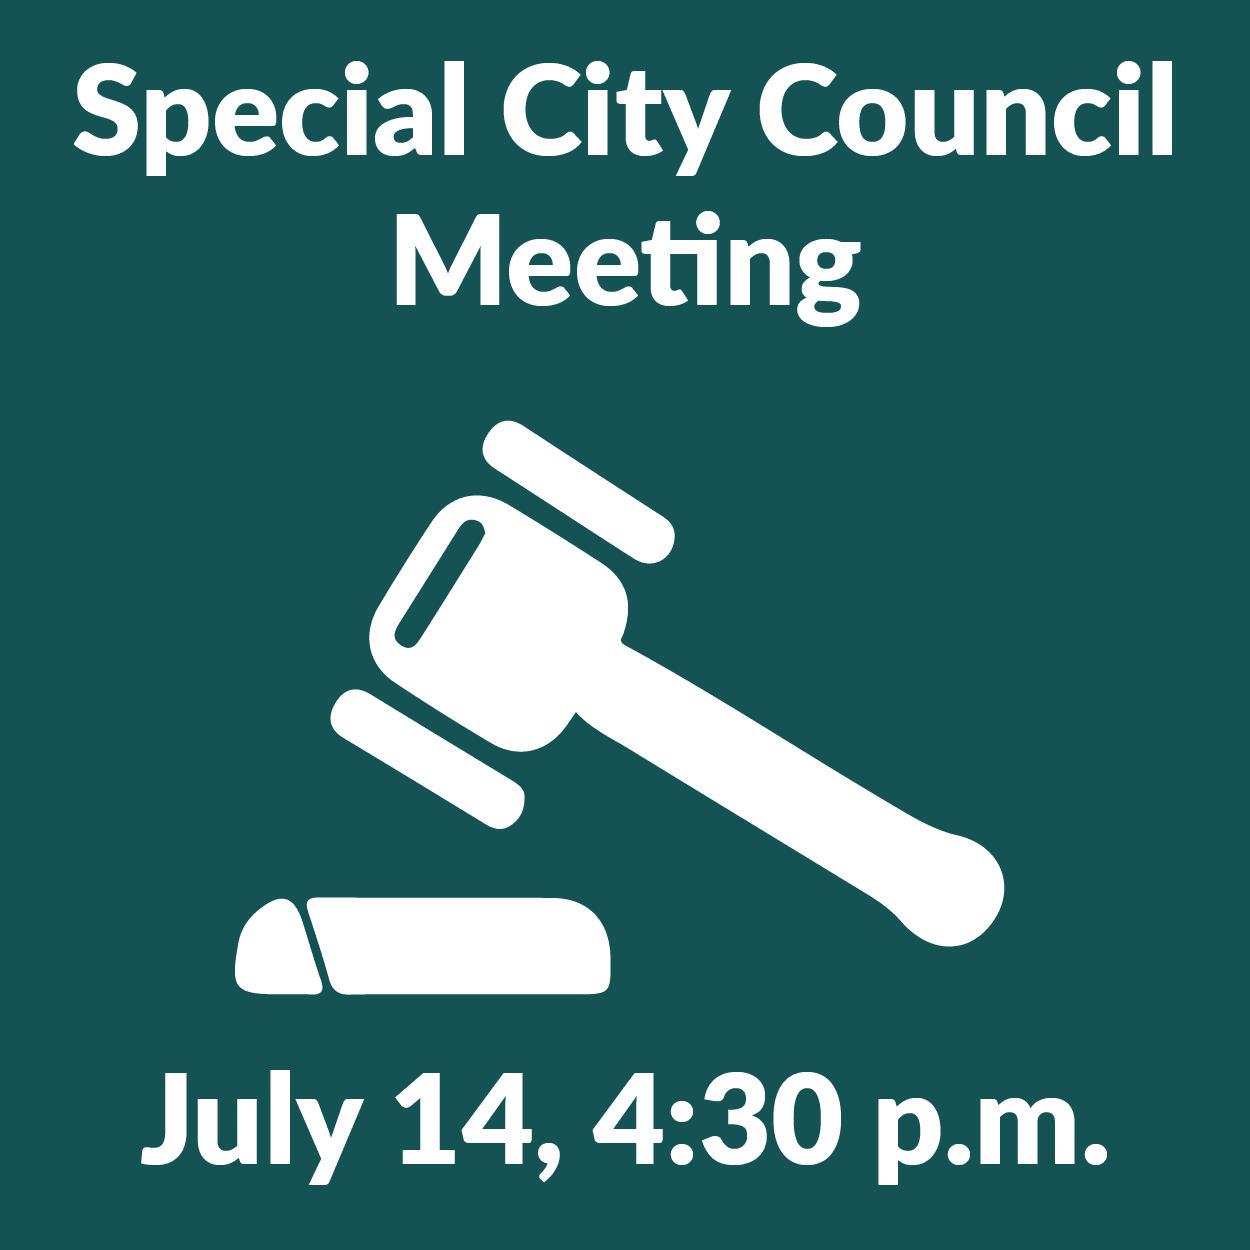 Special City Council meeting scheduled for July 14, 4:30 p.m.